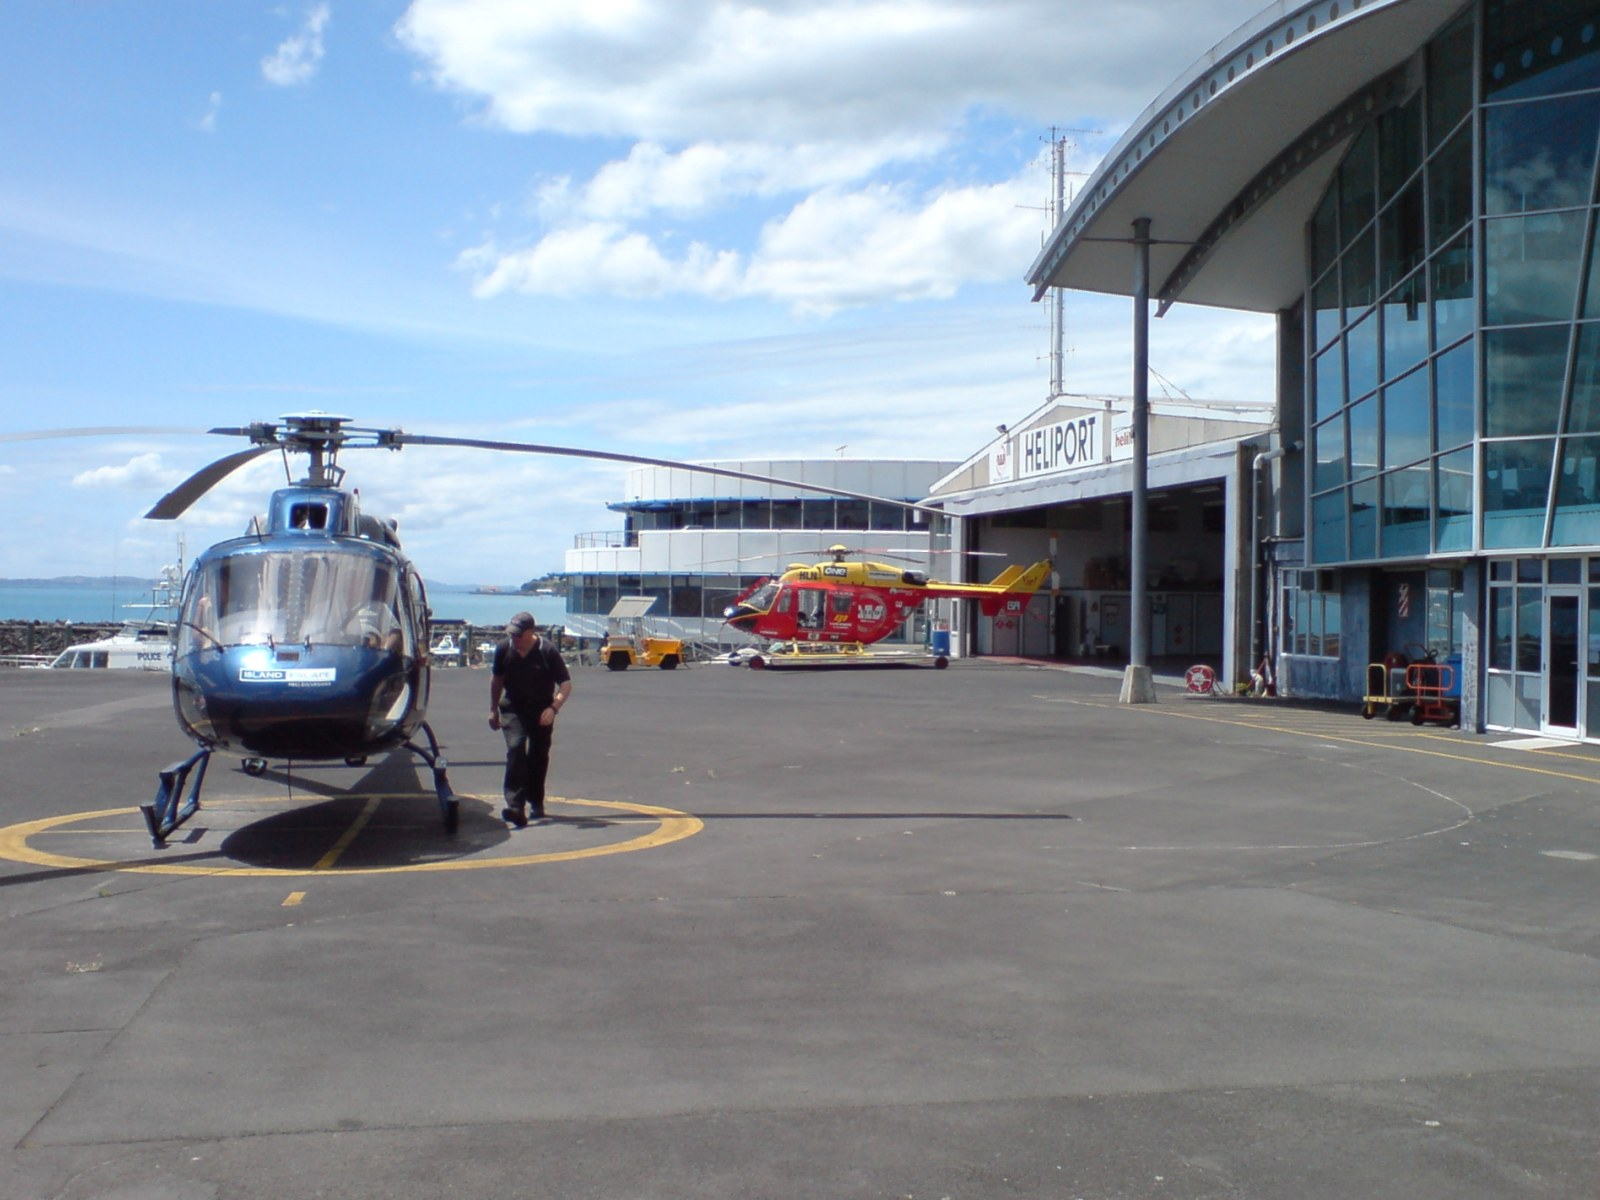 FileAuckland Heliport Rescue And Black Chopper